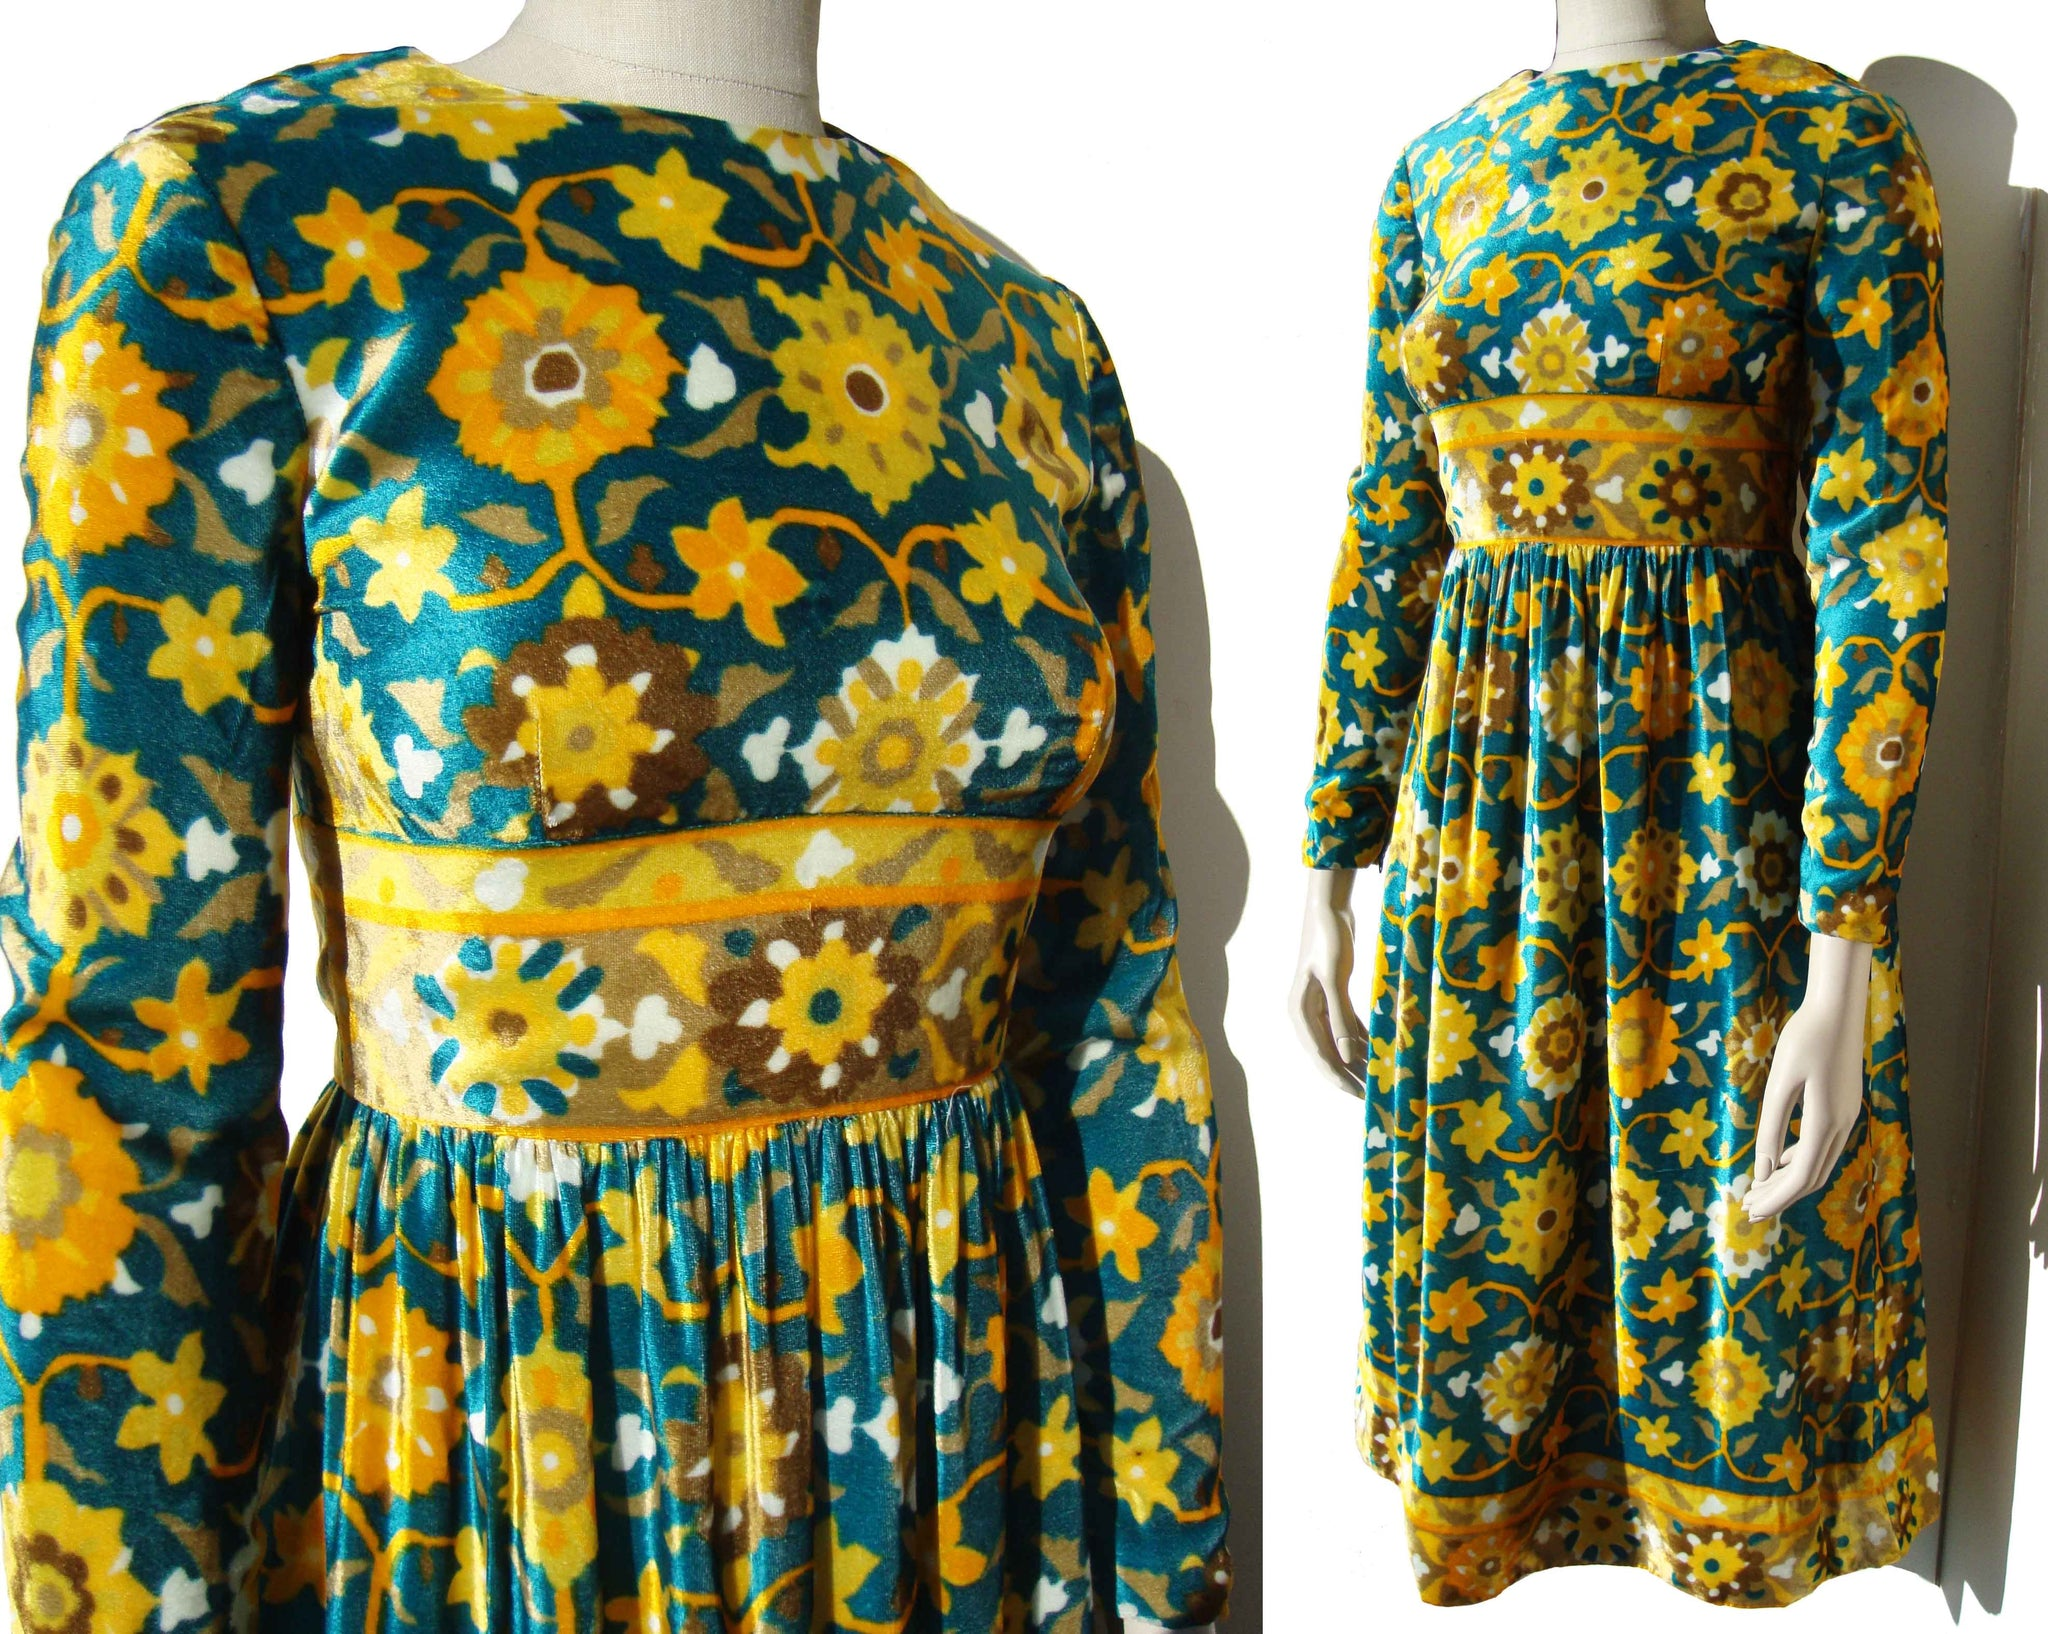 Vintage 70s Dress Mod Velvet Hippie Floral Joan Leslie by Kasper - S